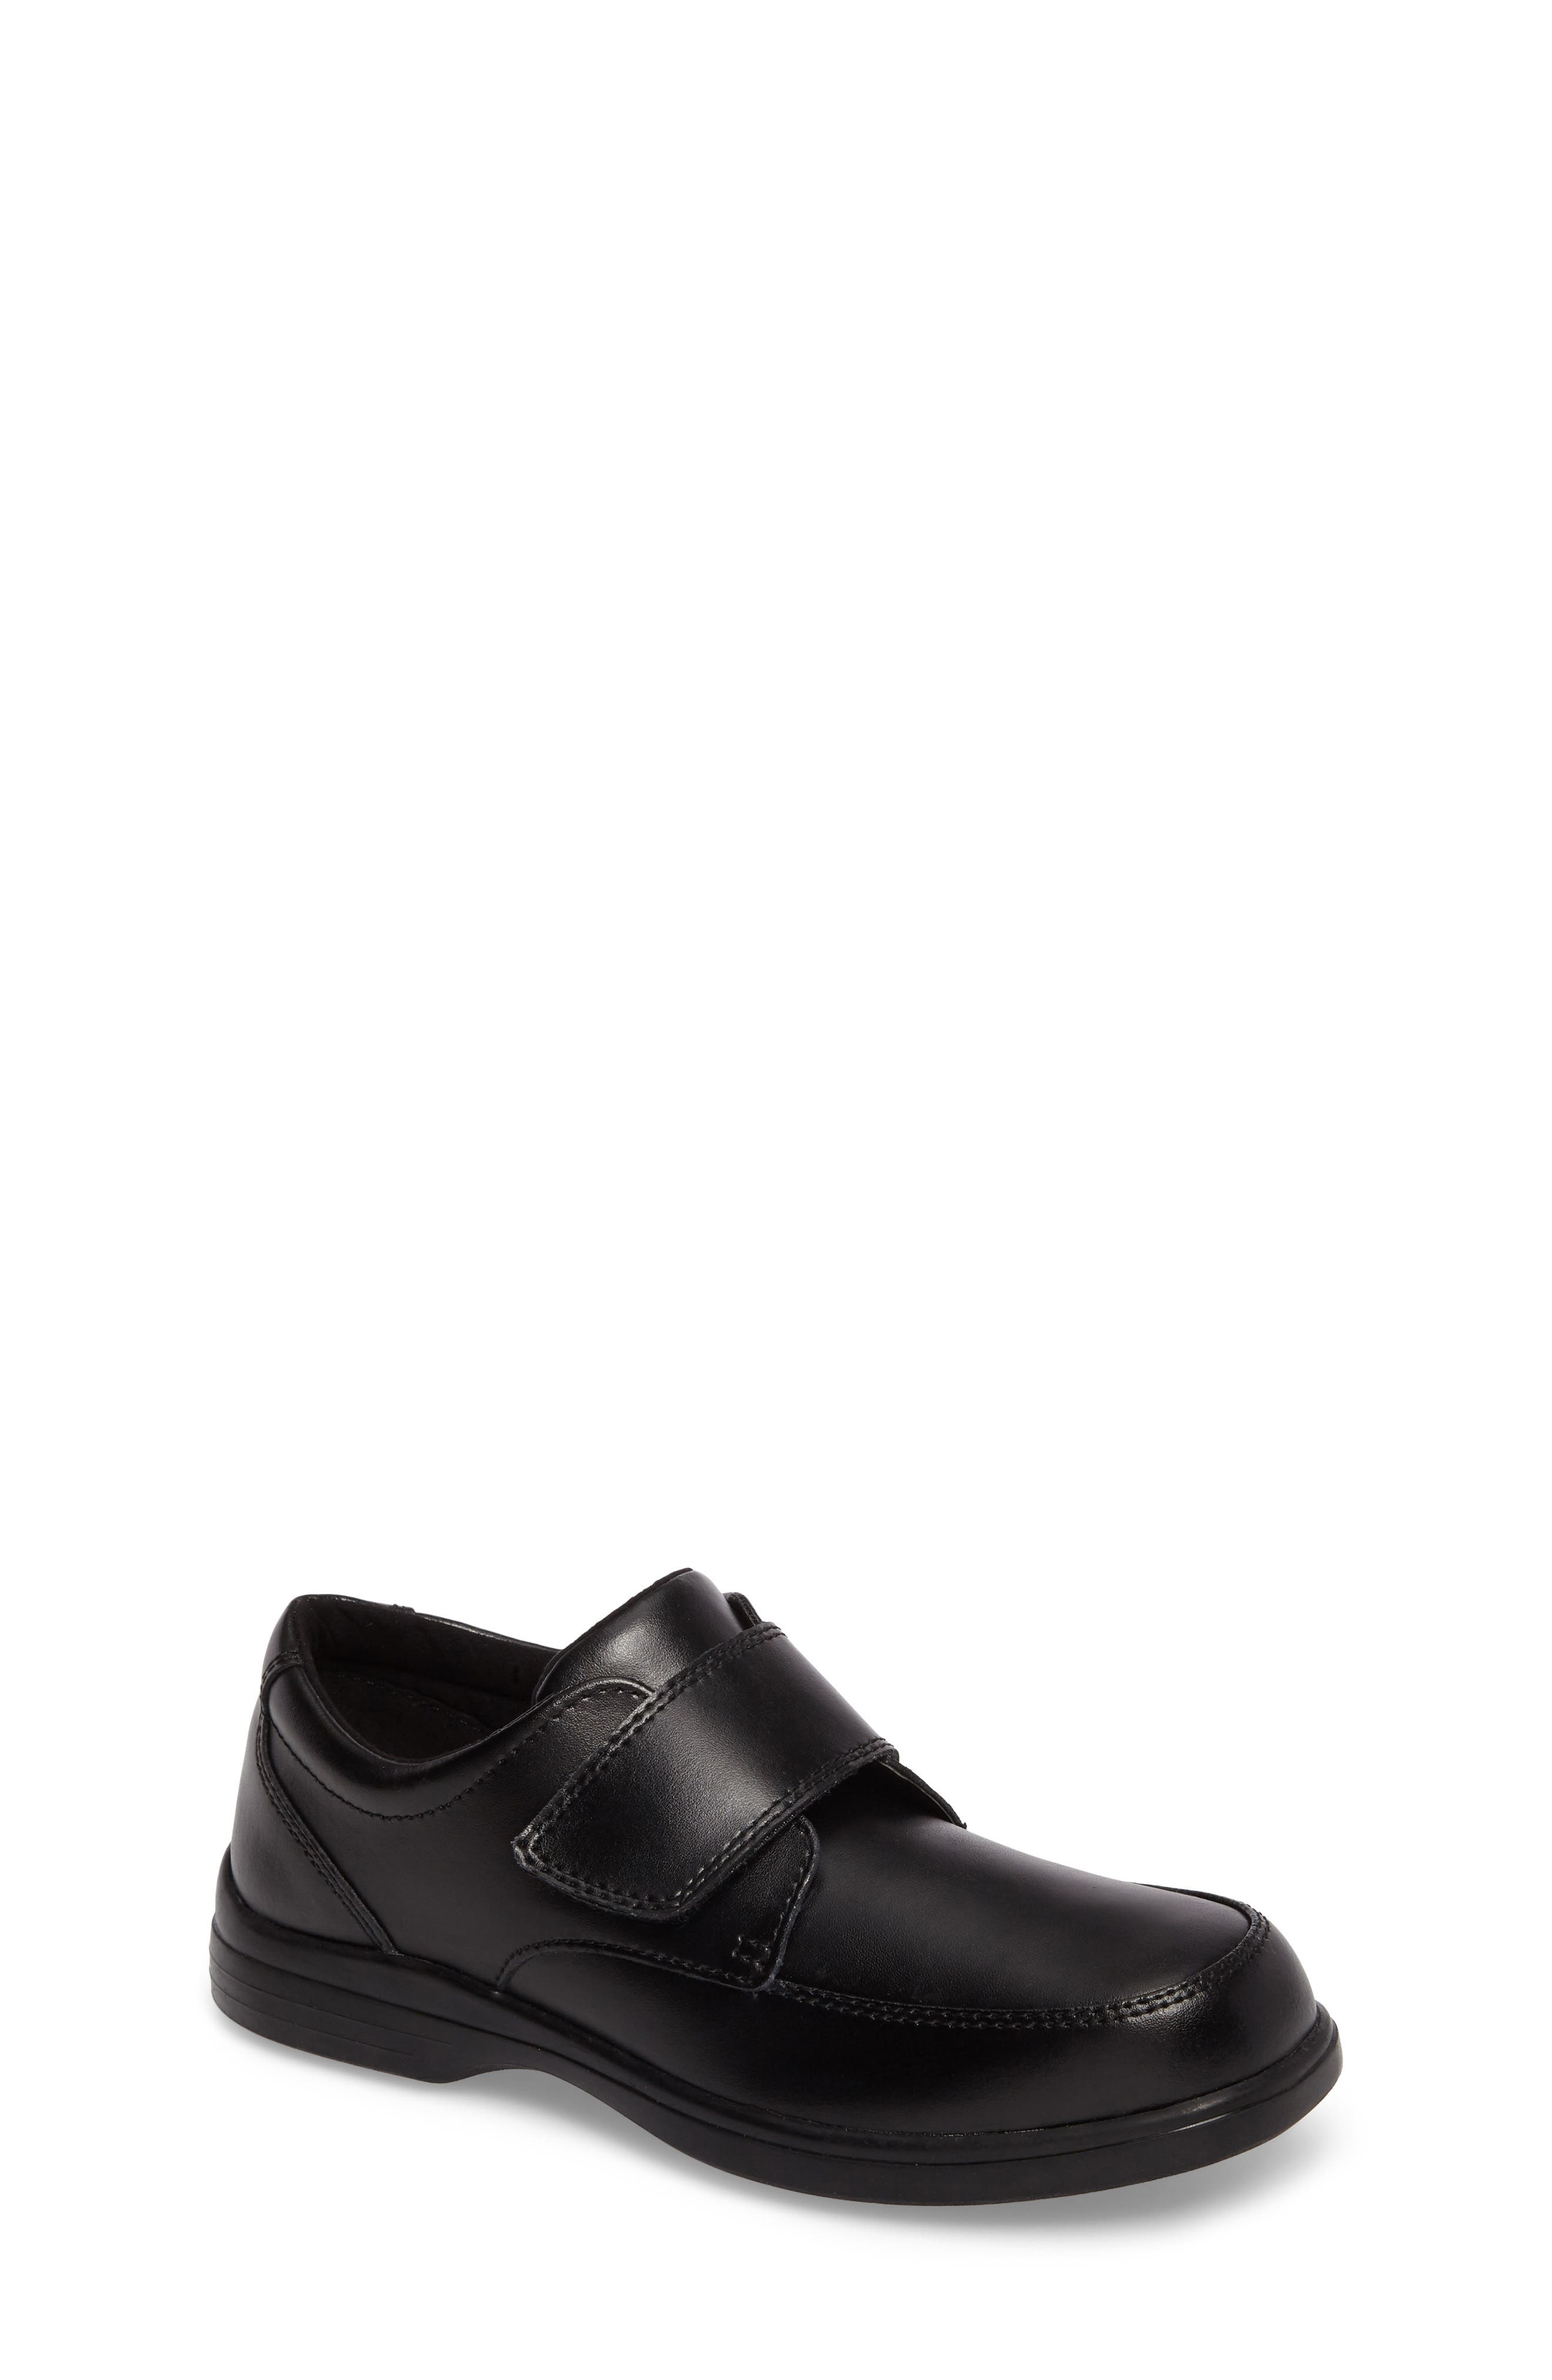 Alternate Image 1 Selected - Hush Puppies Gavin Front Strap Dress Shoe (Toddler, Little Kid & Big Kid)